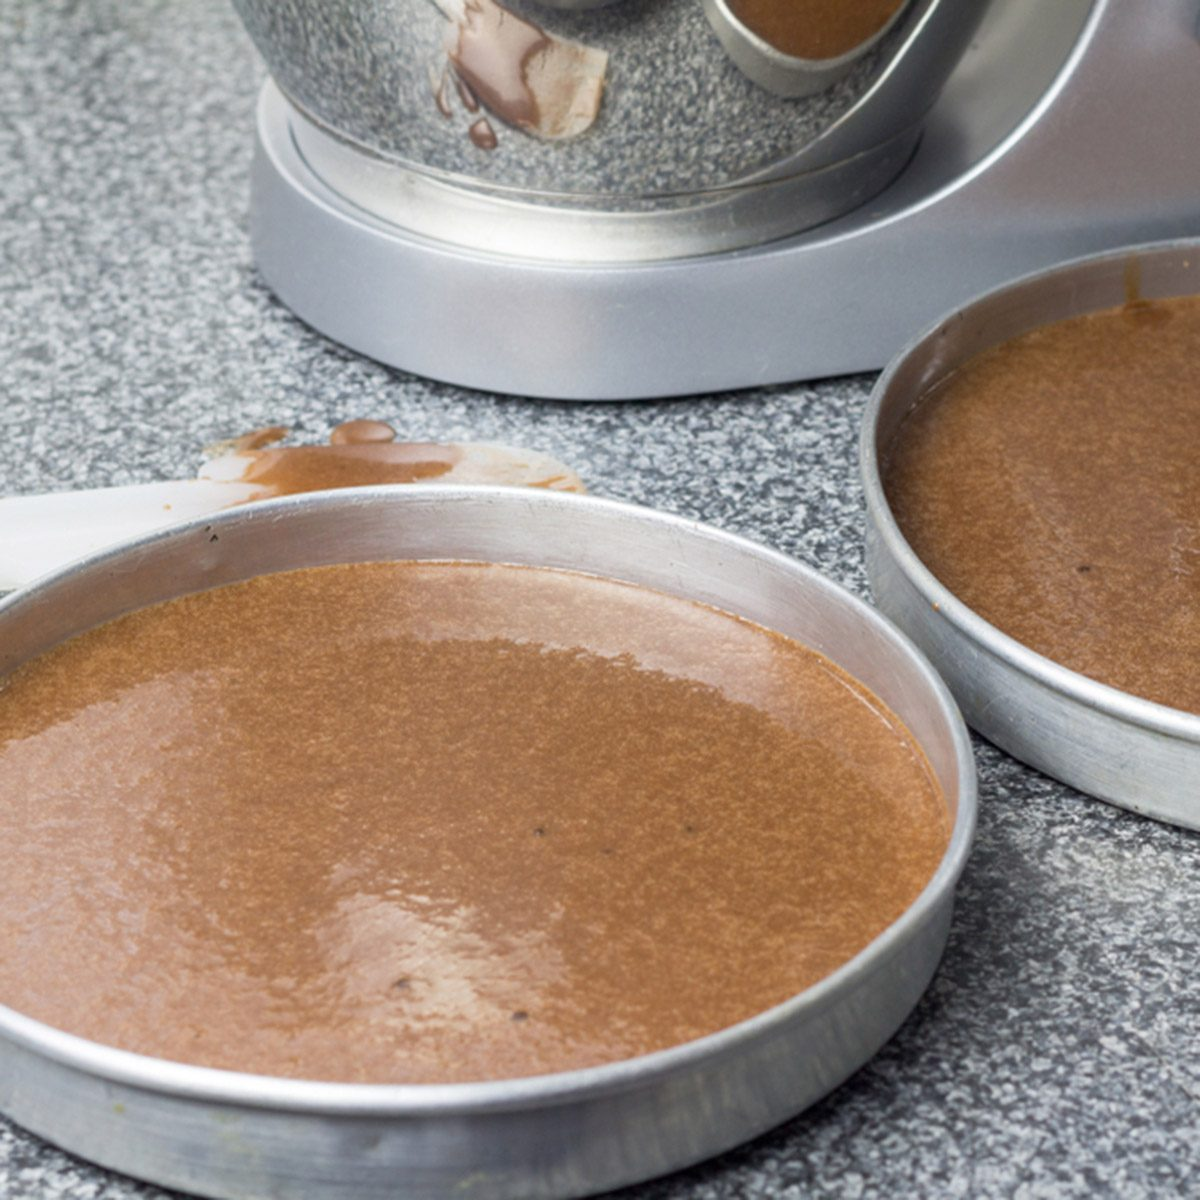 Cake pans with chocolate batter and mixer in background